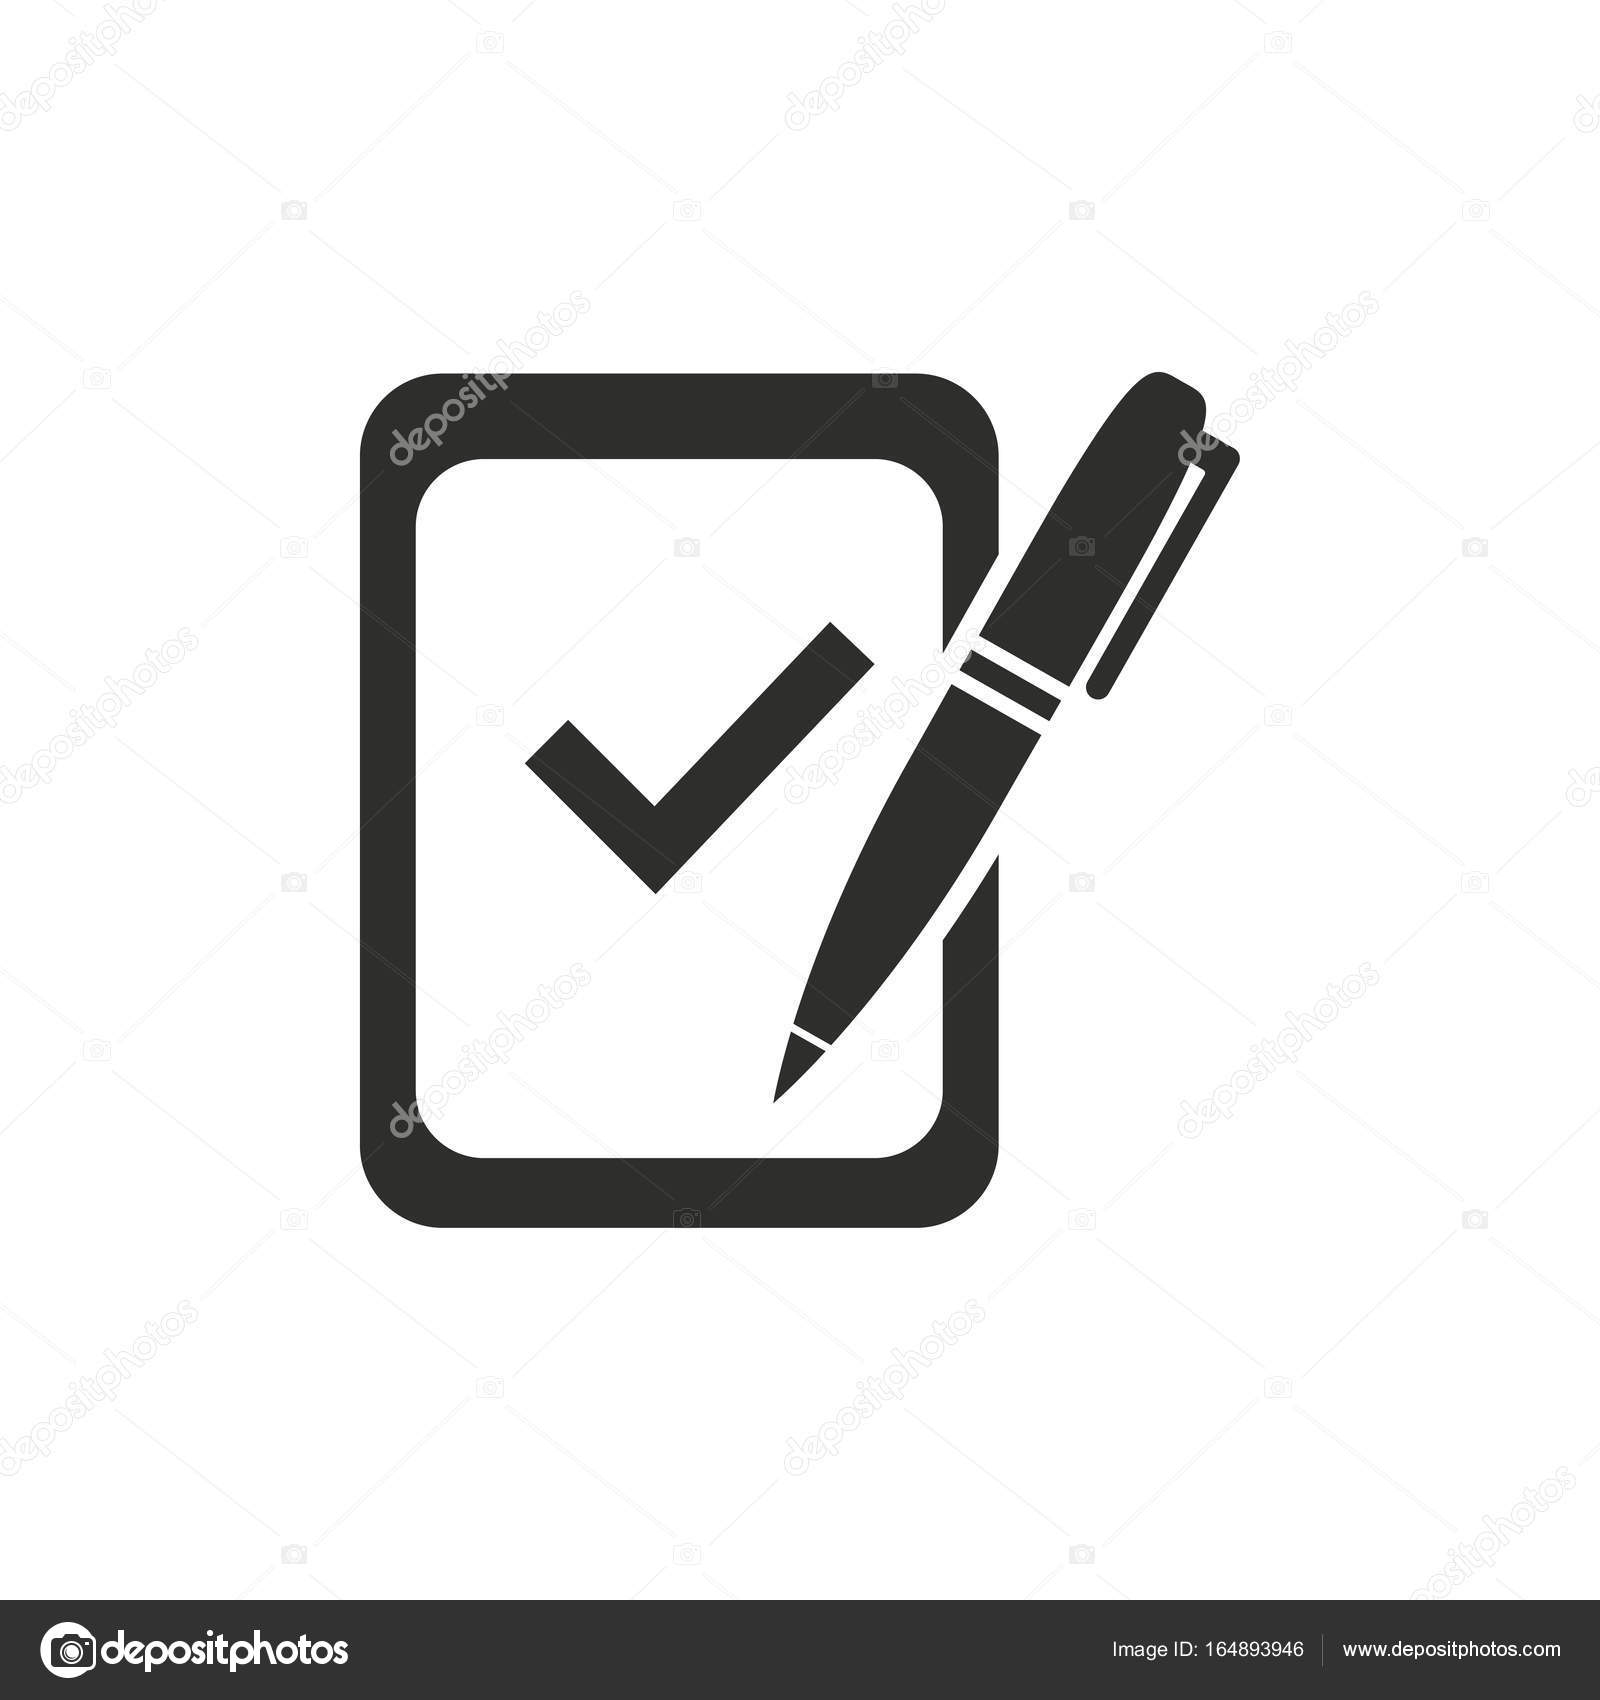 Application form vector icon. — Stock Vector © mask #164893946 on online payment icons, staff icons, activities icons, home icons, calendar icons, facilities icons, mission statement icons, welcome icons, what's new icons, company profile icons, training icons, newsletter icons, schedule icons, contact icons, feedback icons, links icons, lunch menu icons,